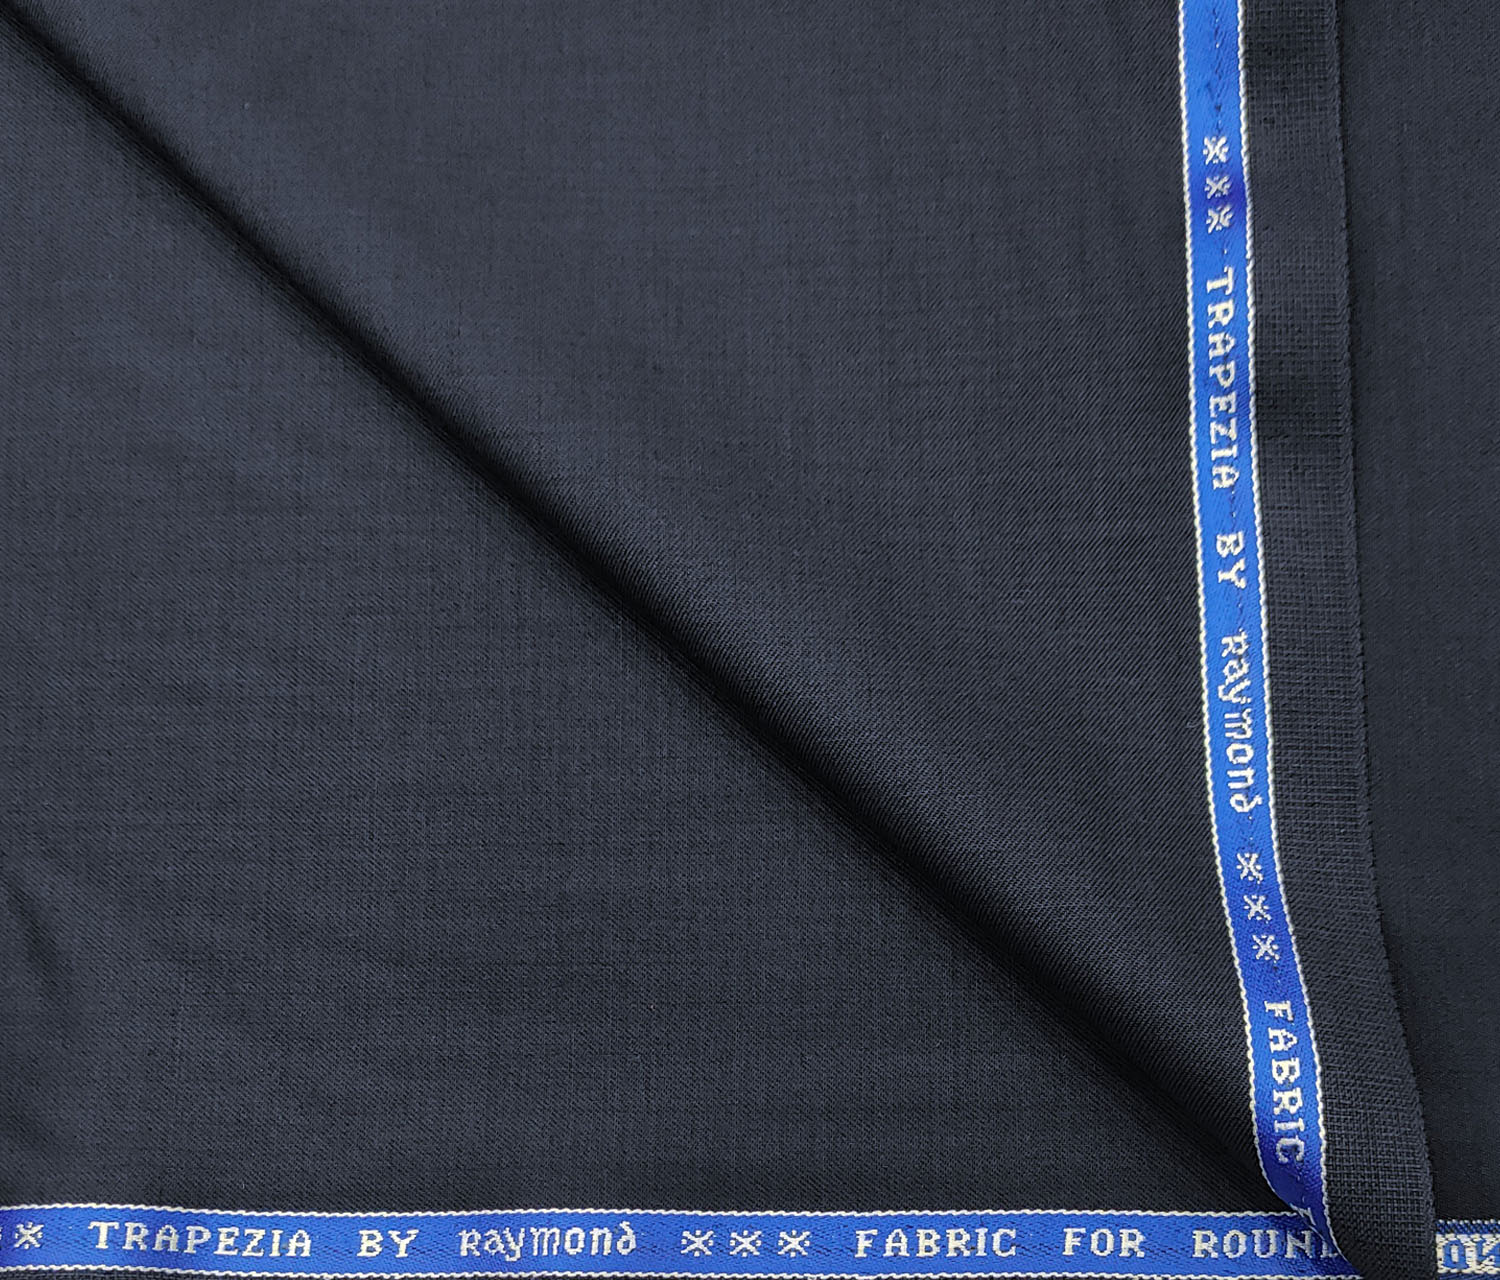 Raymond Men's Wool Solids 3.75 Meter Unstitched Suiting Fabric (Dark Navy Blue)